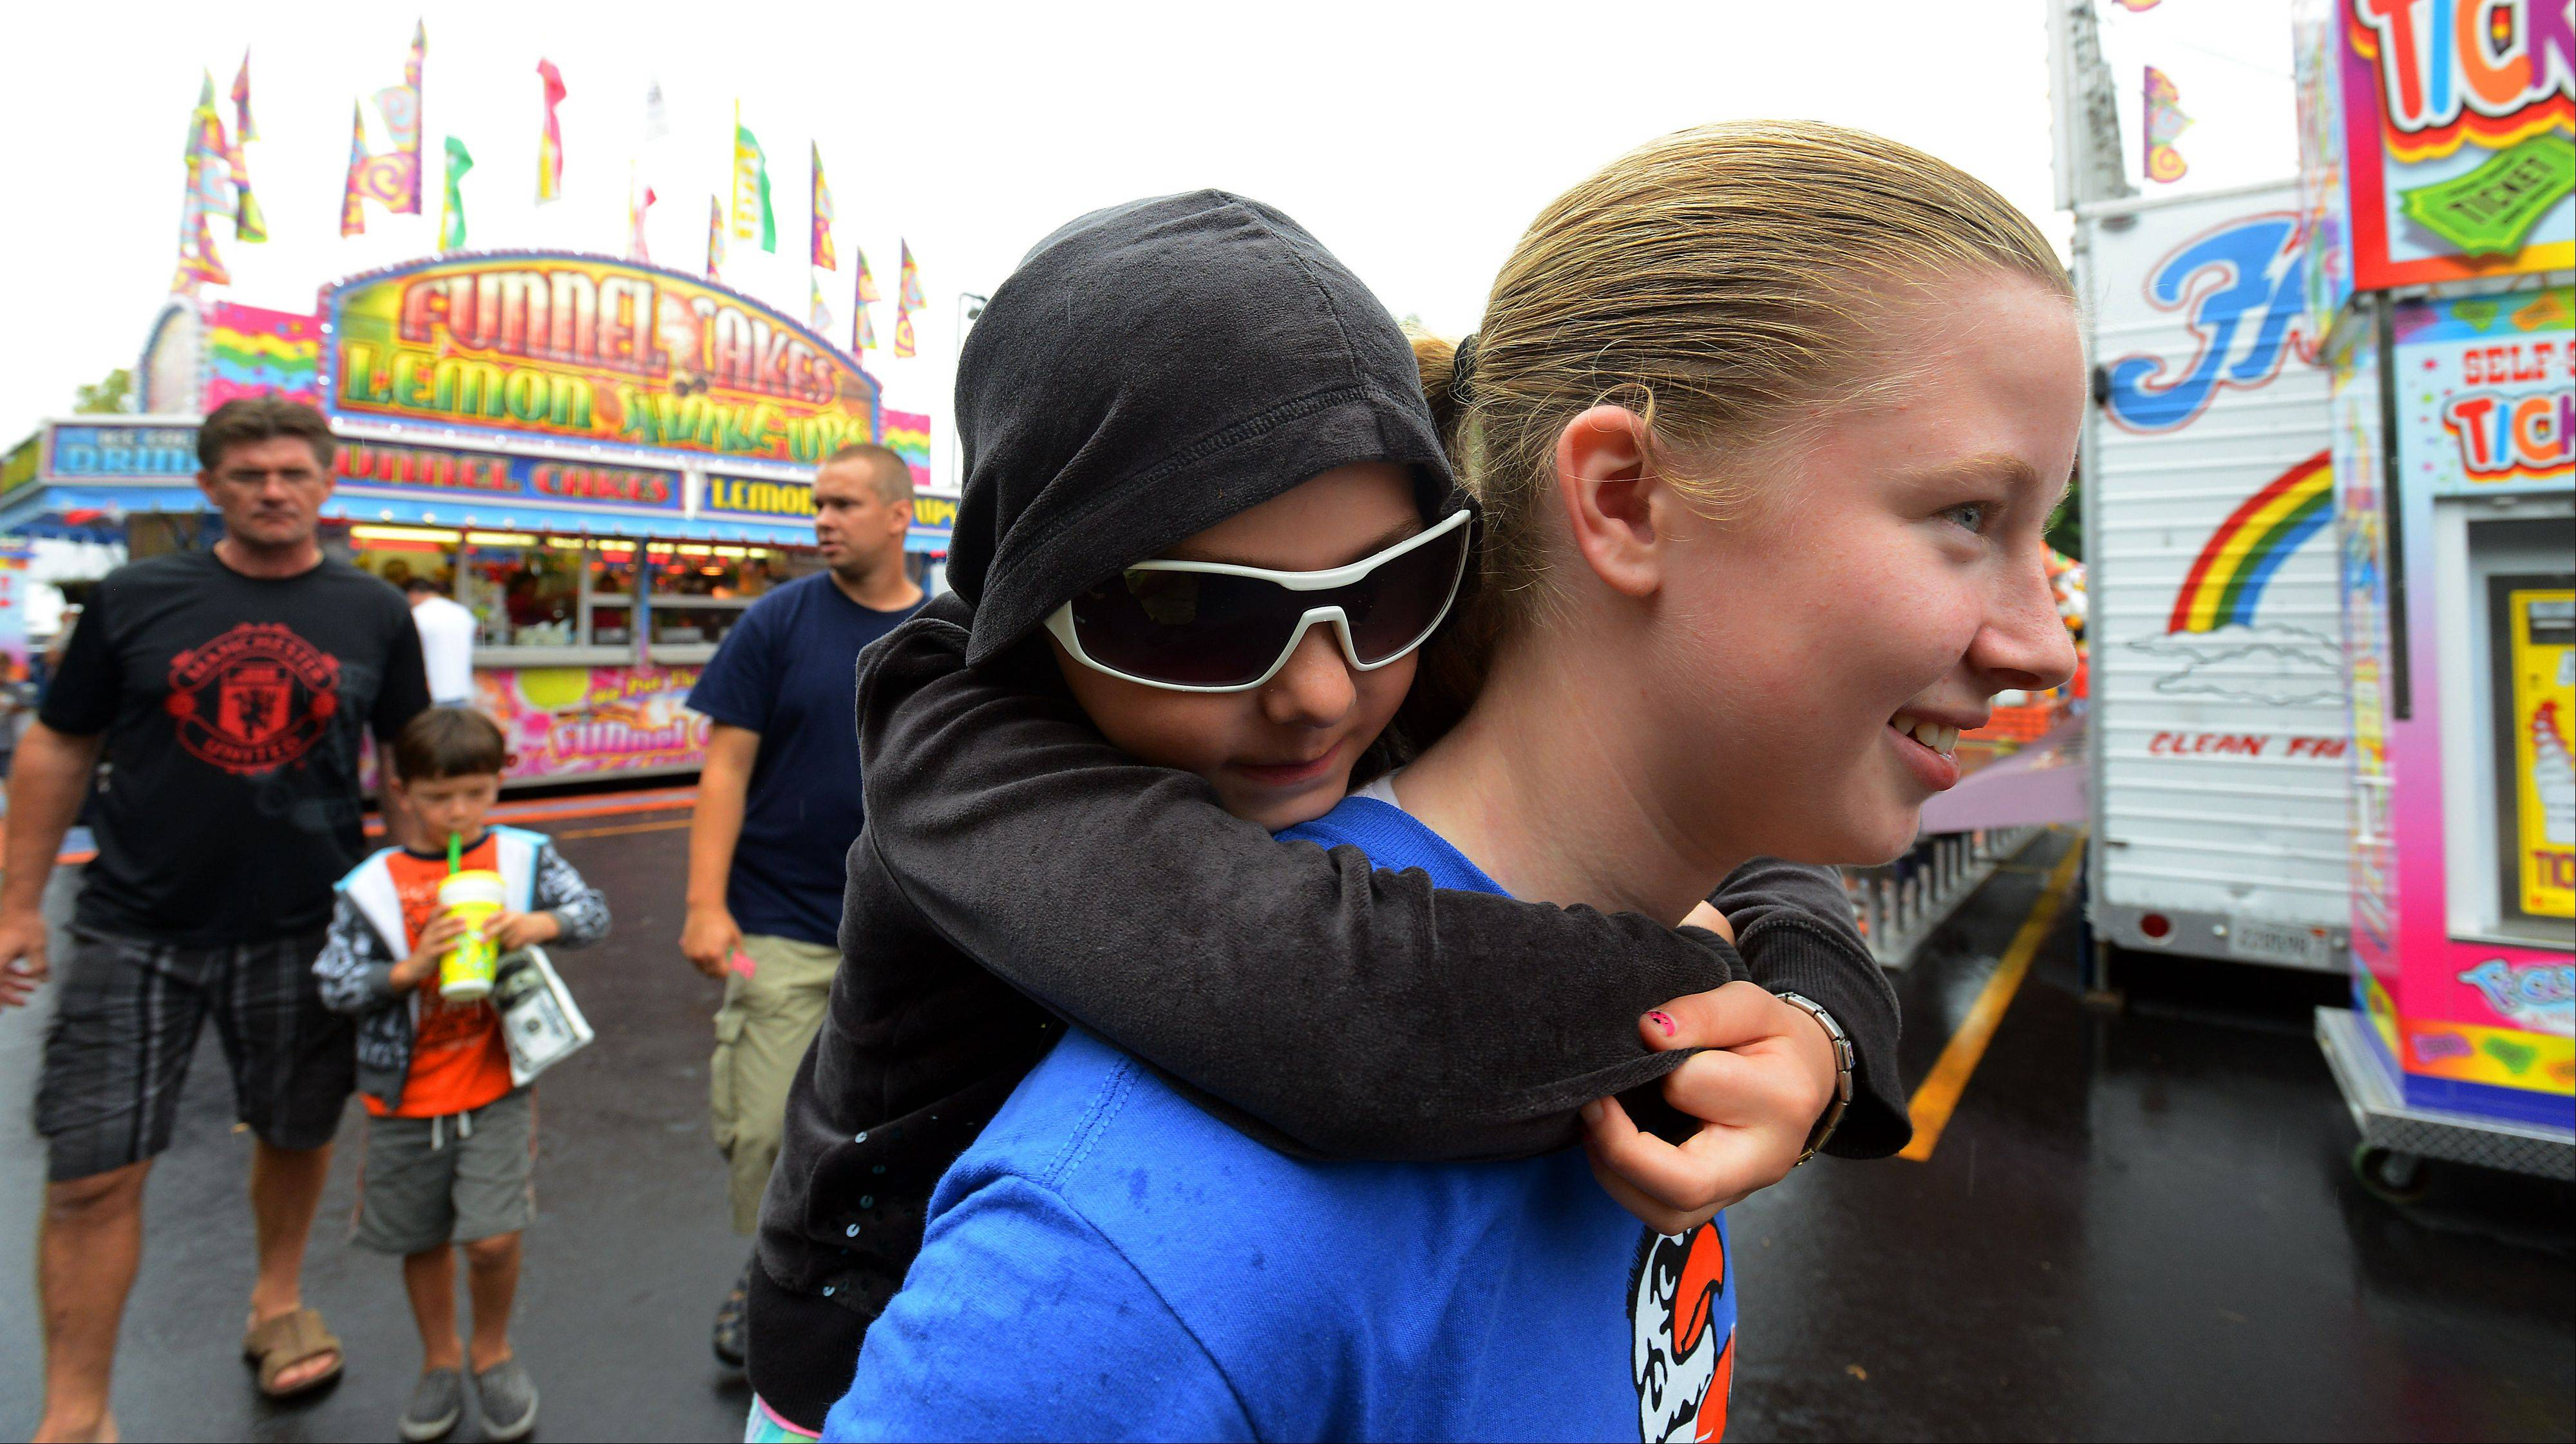 Getting a ride in the rain from her sister, M.J. Morris, 6, holds on tight while Alexis, 14, does all the leg work as they venture around deciding what ride looks the coolest during the opening day of Septemberfest in Schaumburg on Saturday.